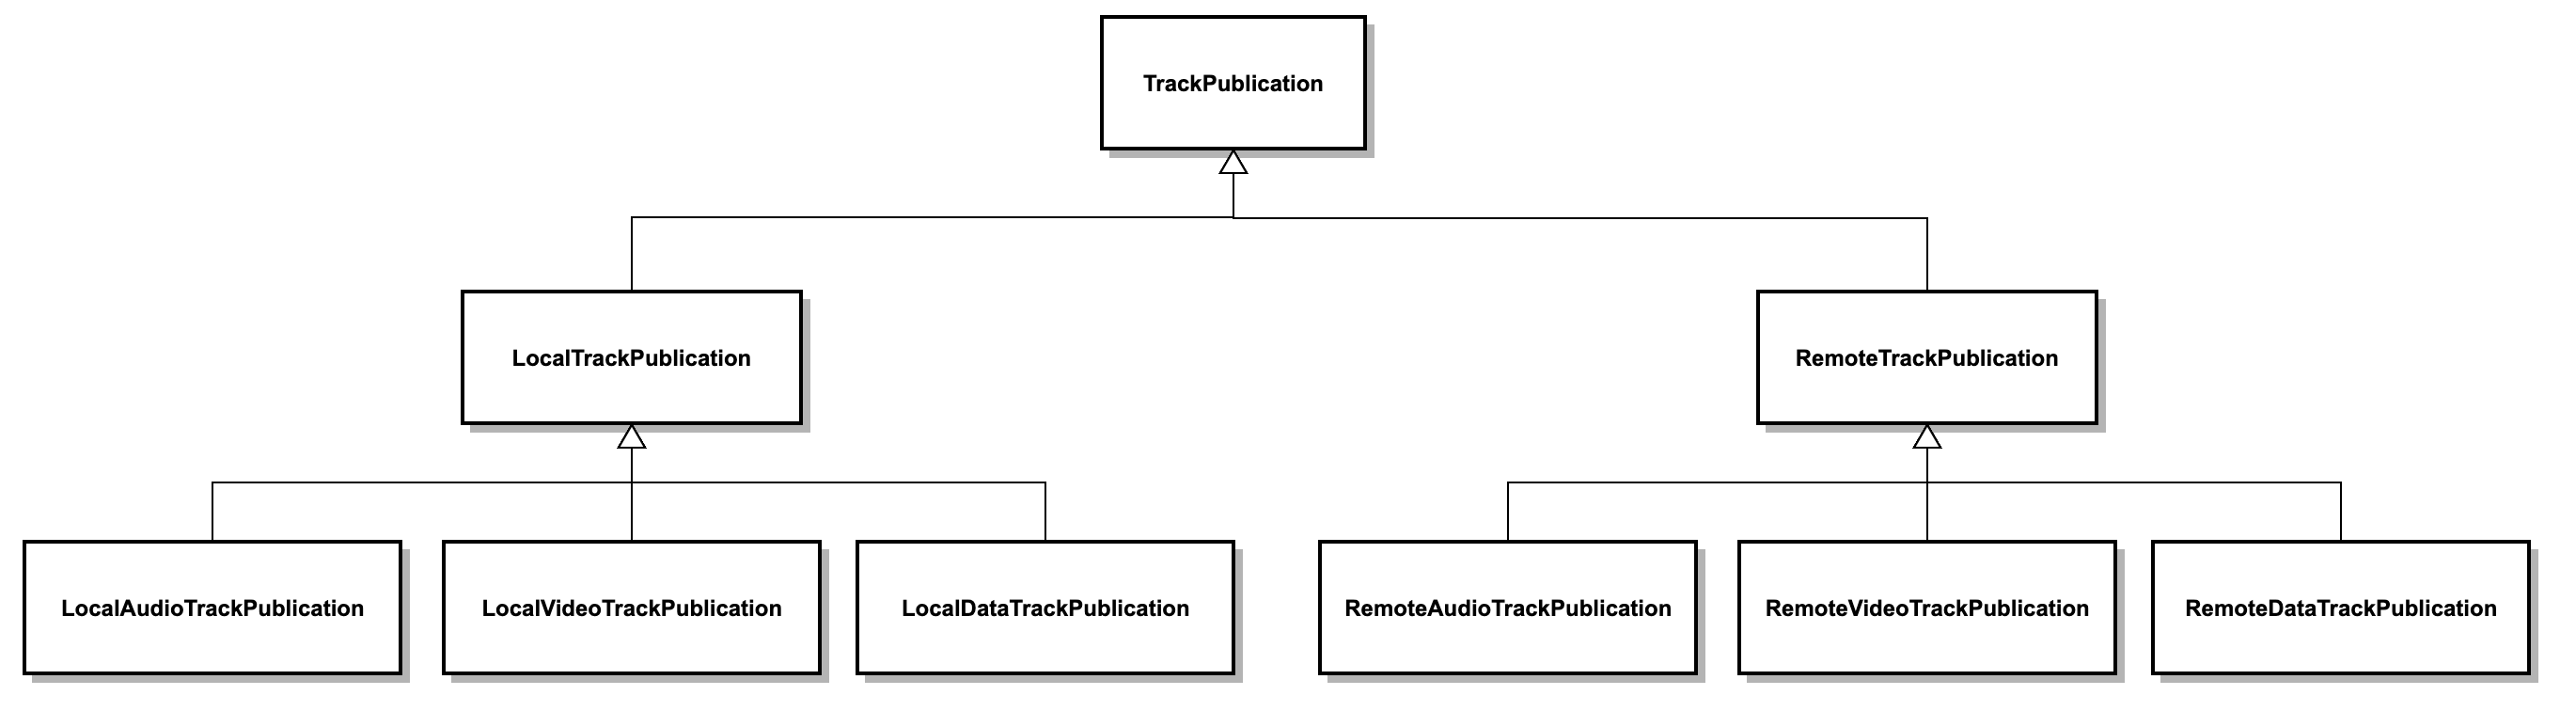 Programmable Video SDKs TrackPublication Types